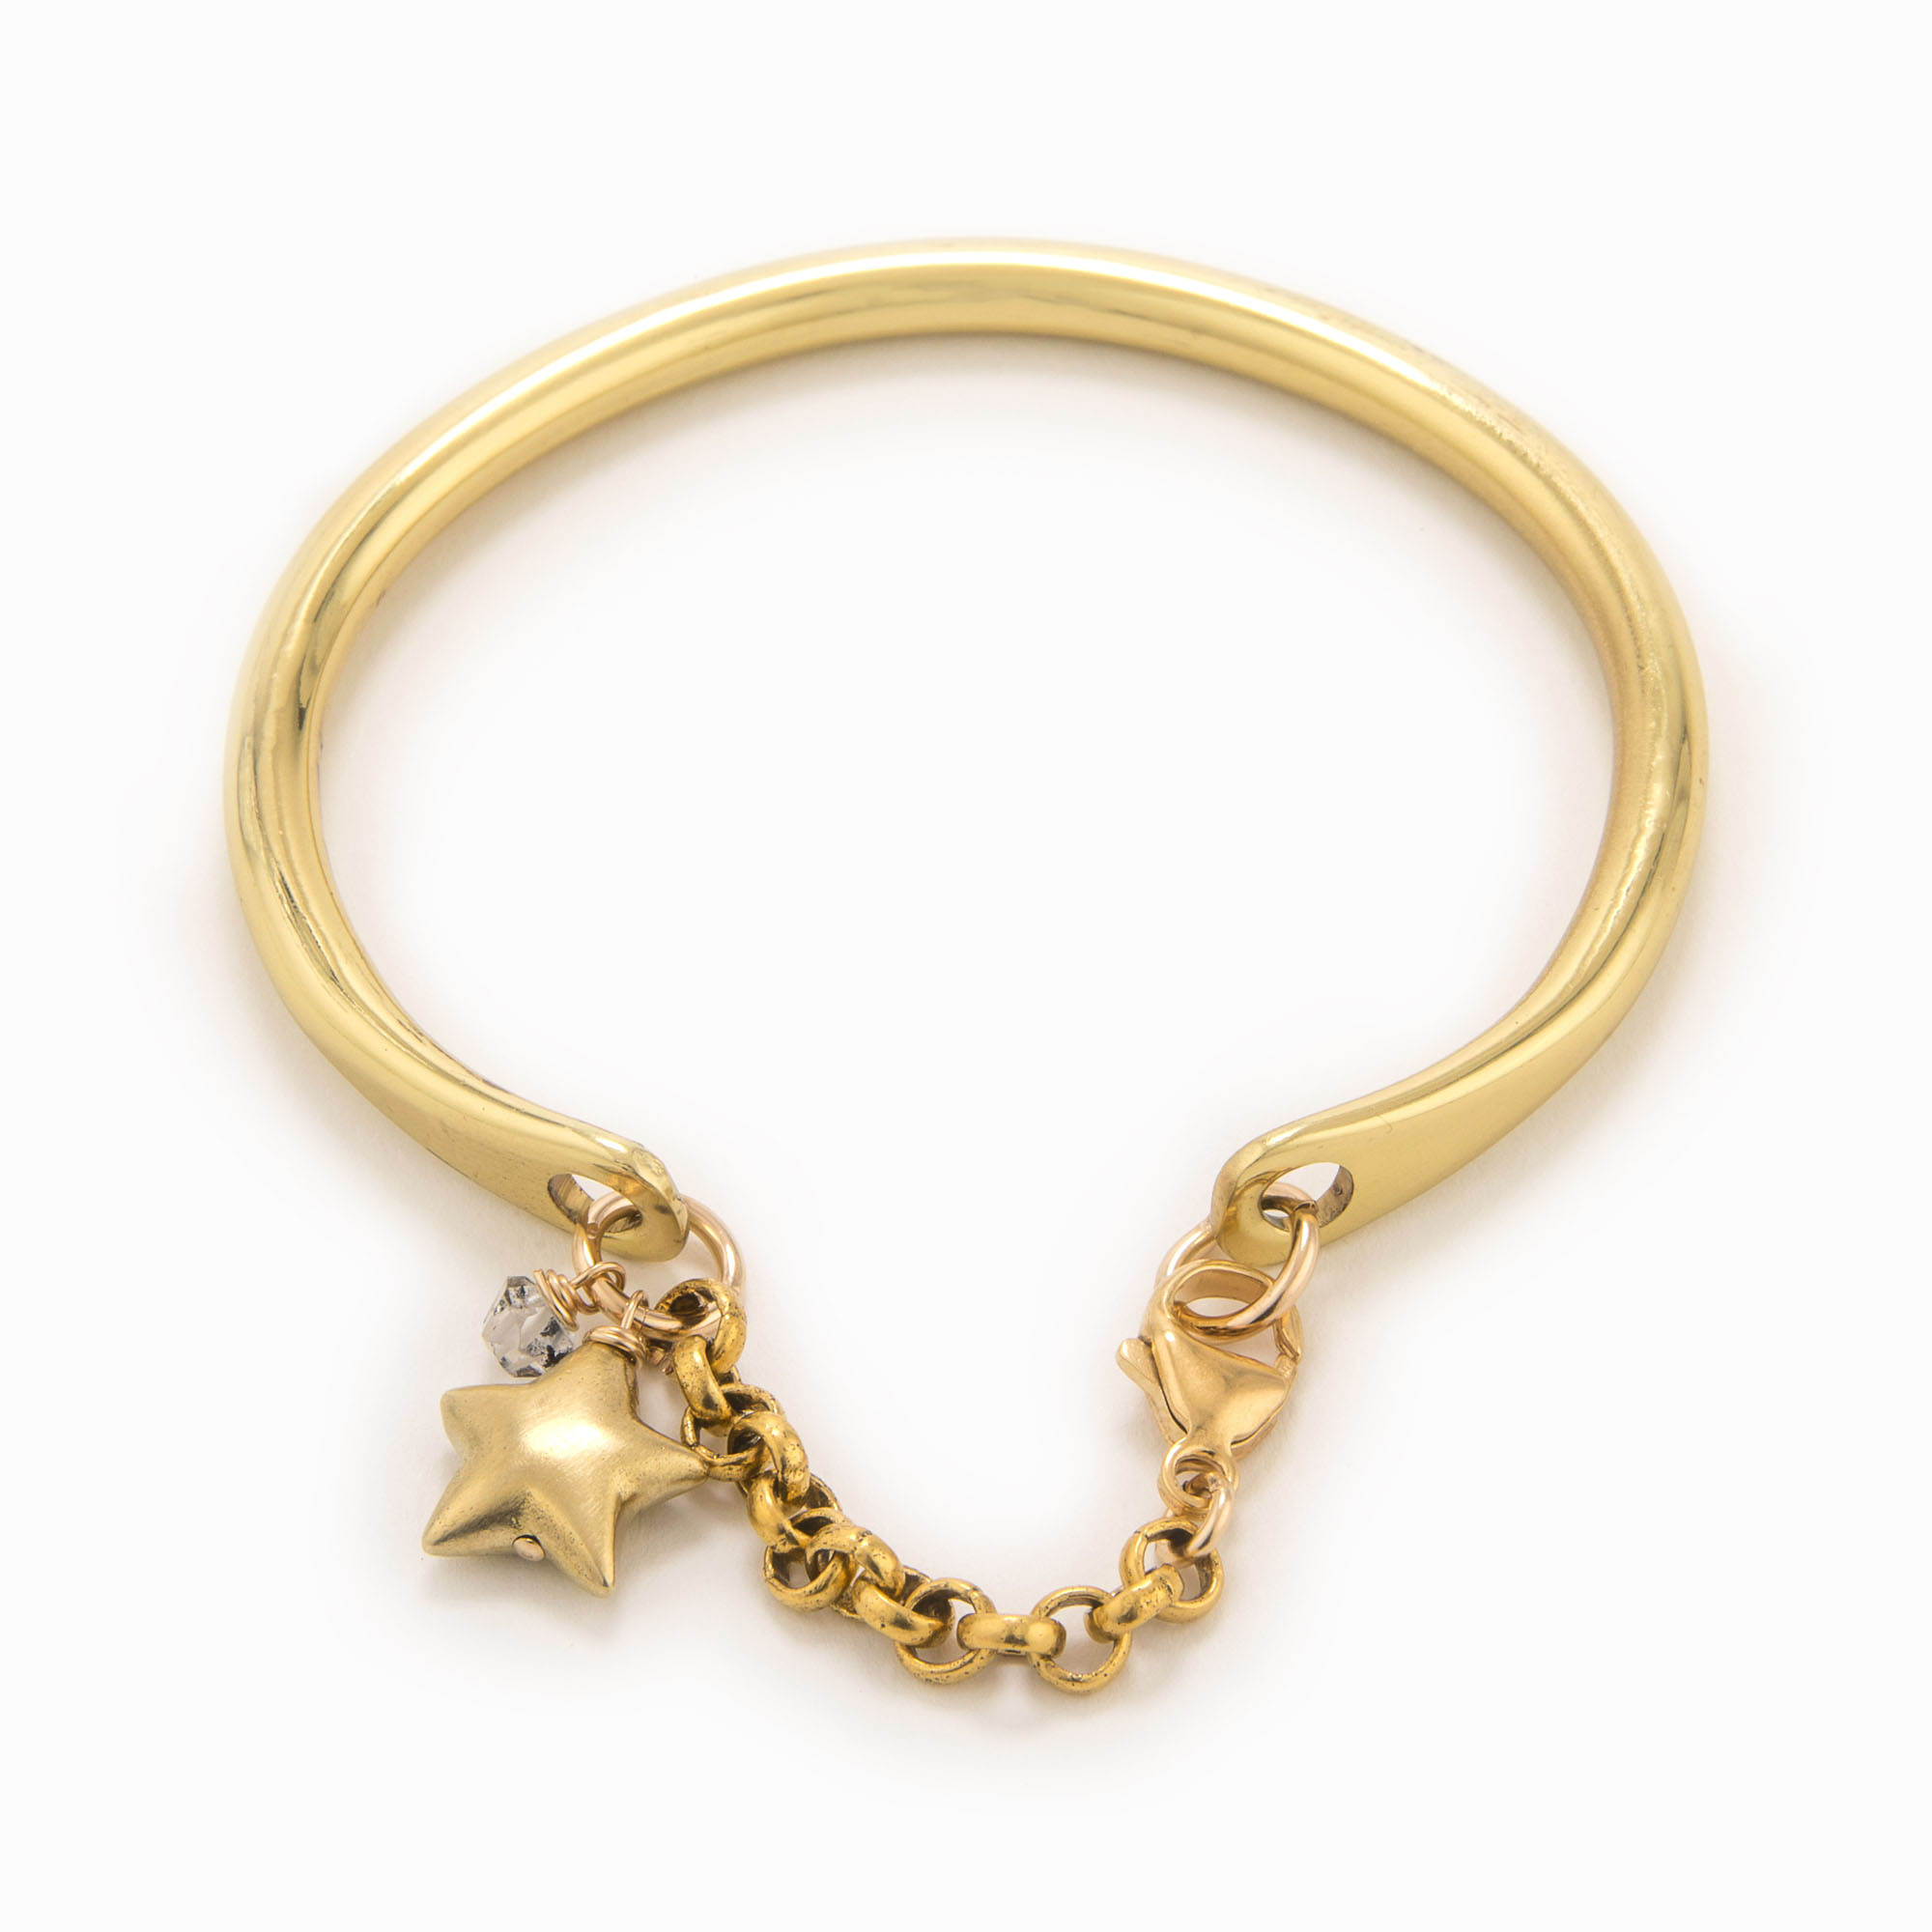 A brass cuff with rolo chain, Herkimer quartz and brass star charm.